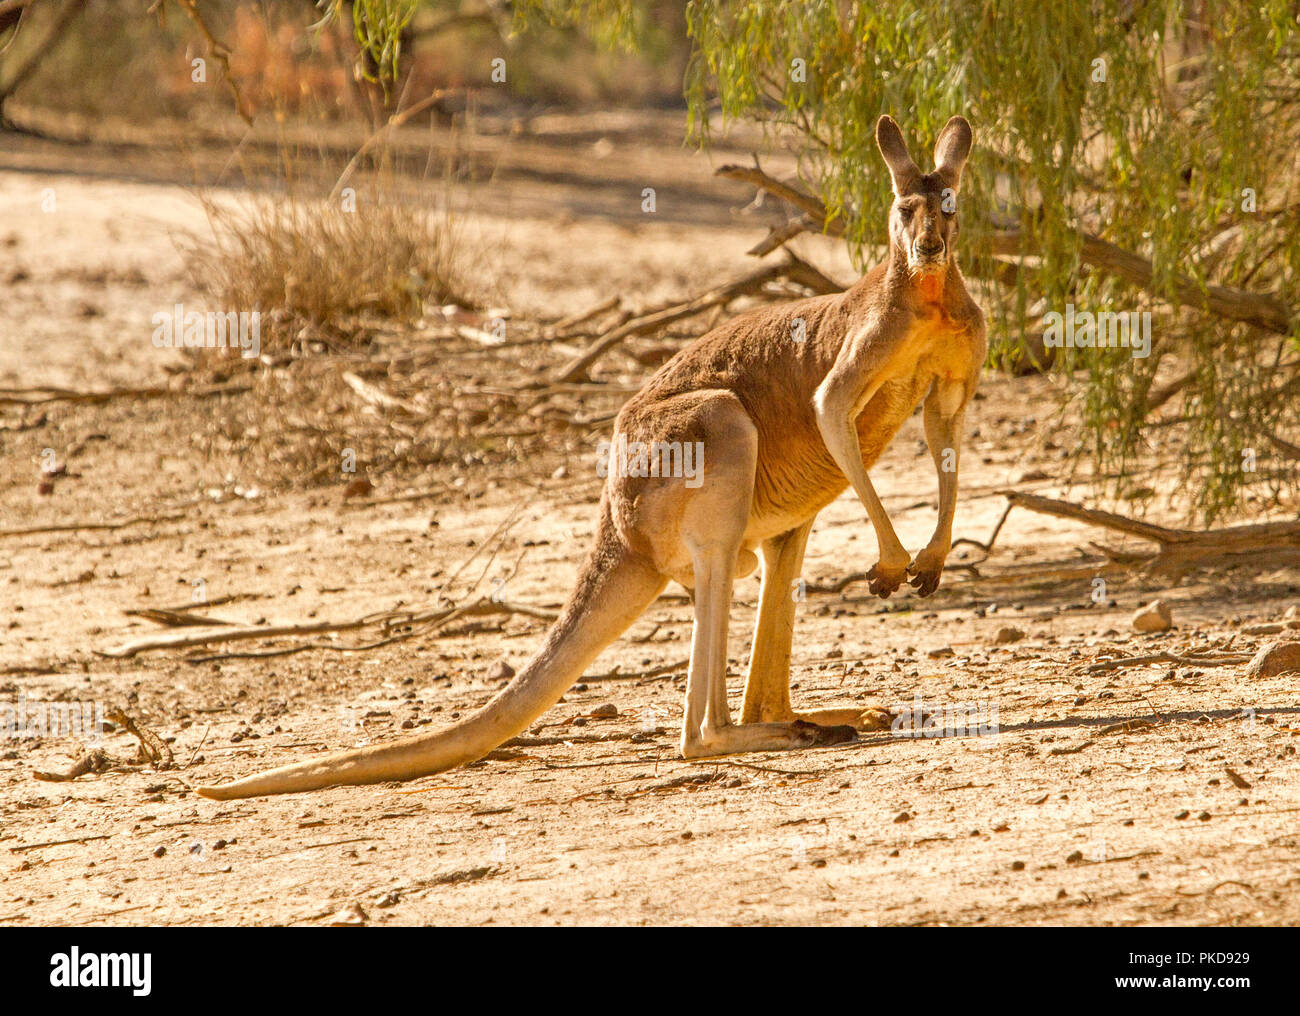 Male ed kangaroo, Macropus rufus, on barren red soul of Australian outback during drought, staring at camera, at Culgoa Floodplains National Park, Qld - Stock Image